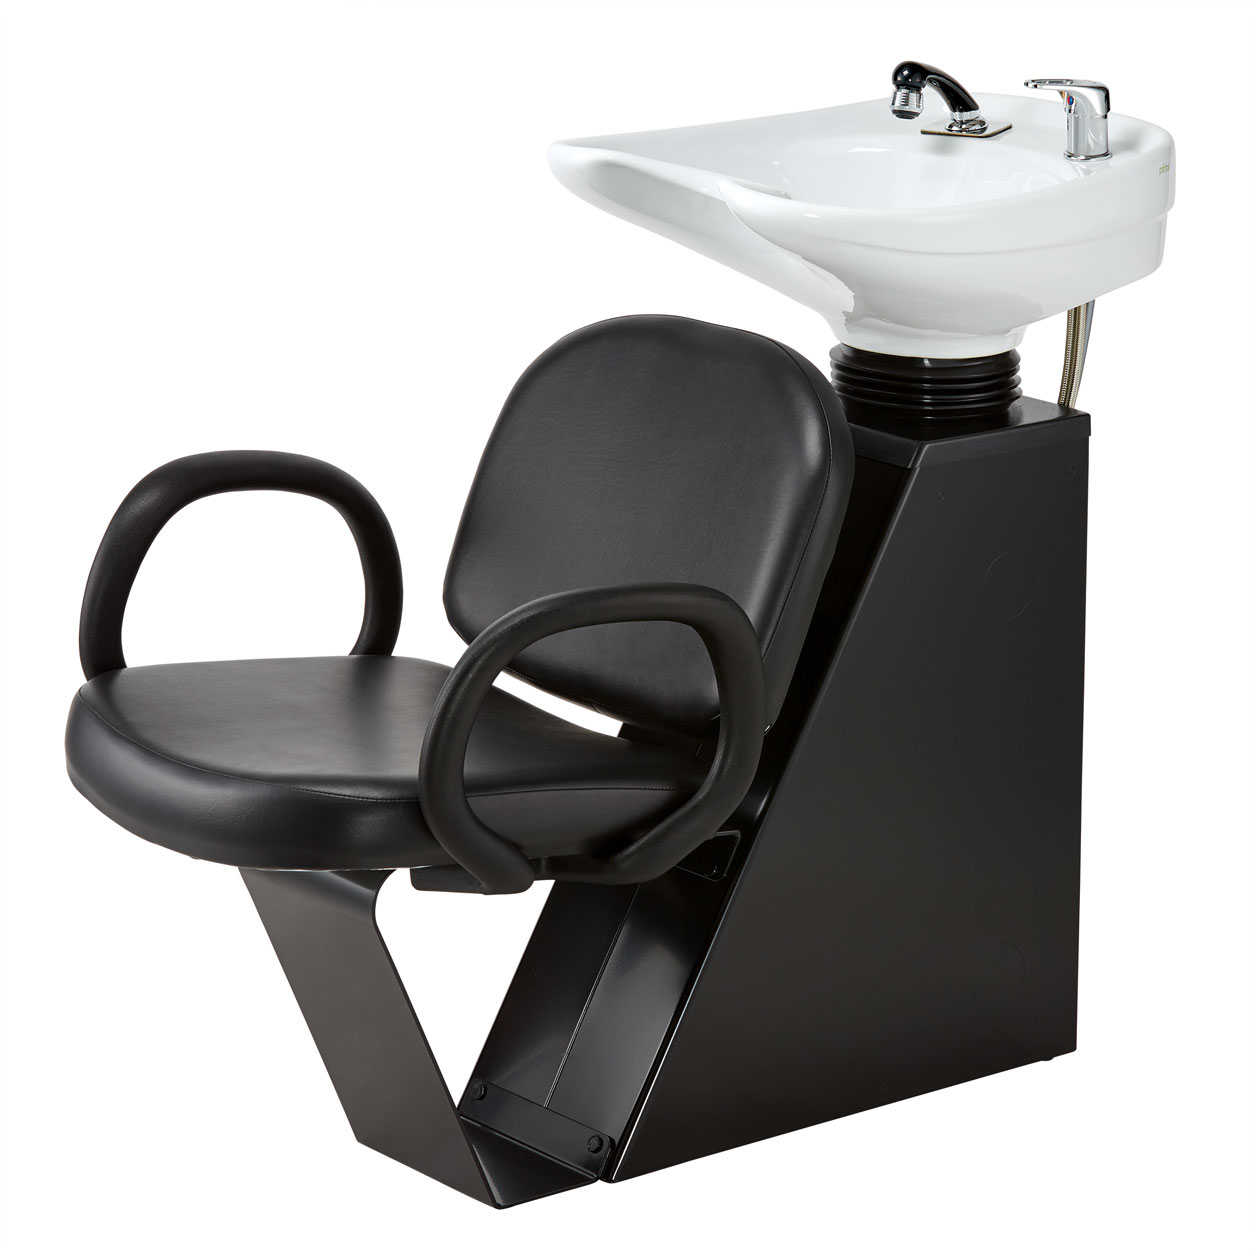 Pibbs 5274 Loop Shampoo Unit With Tilting Bowl  main product image